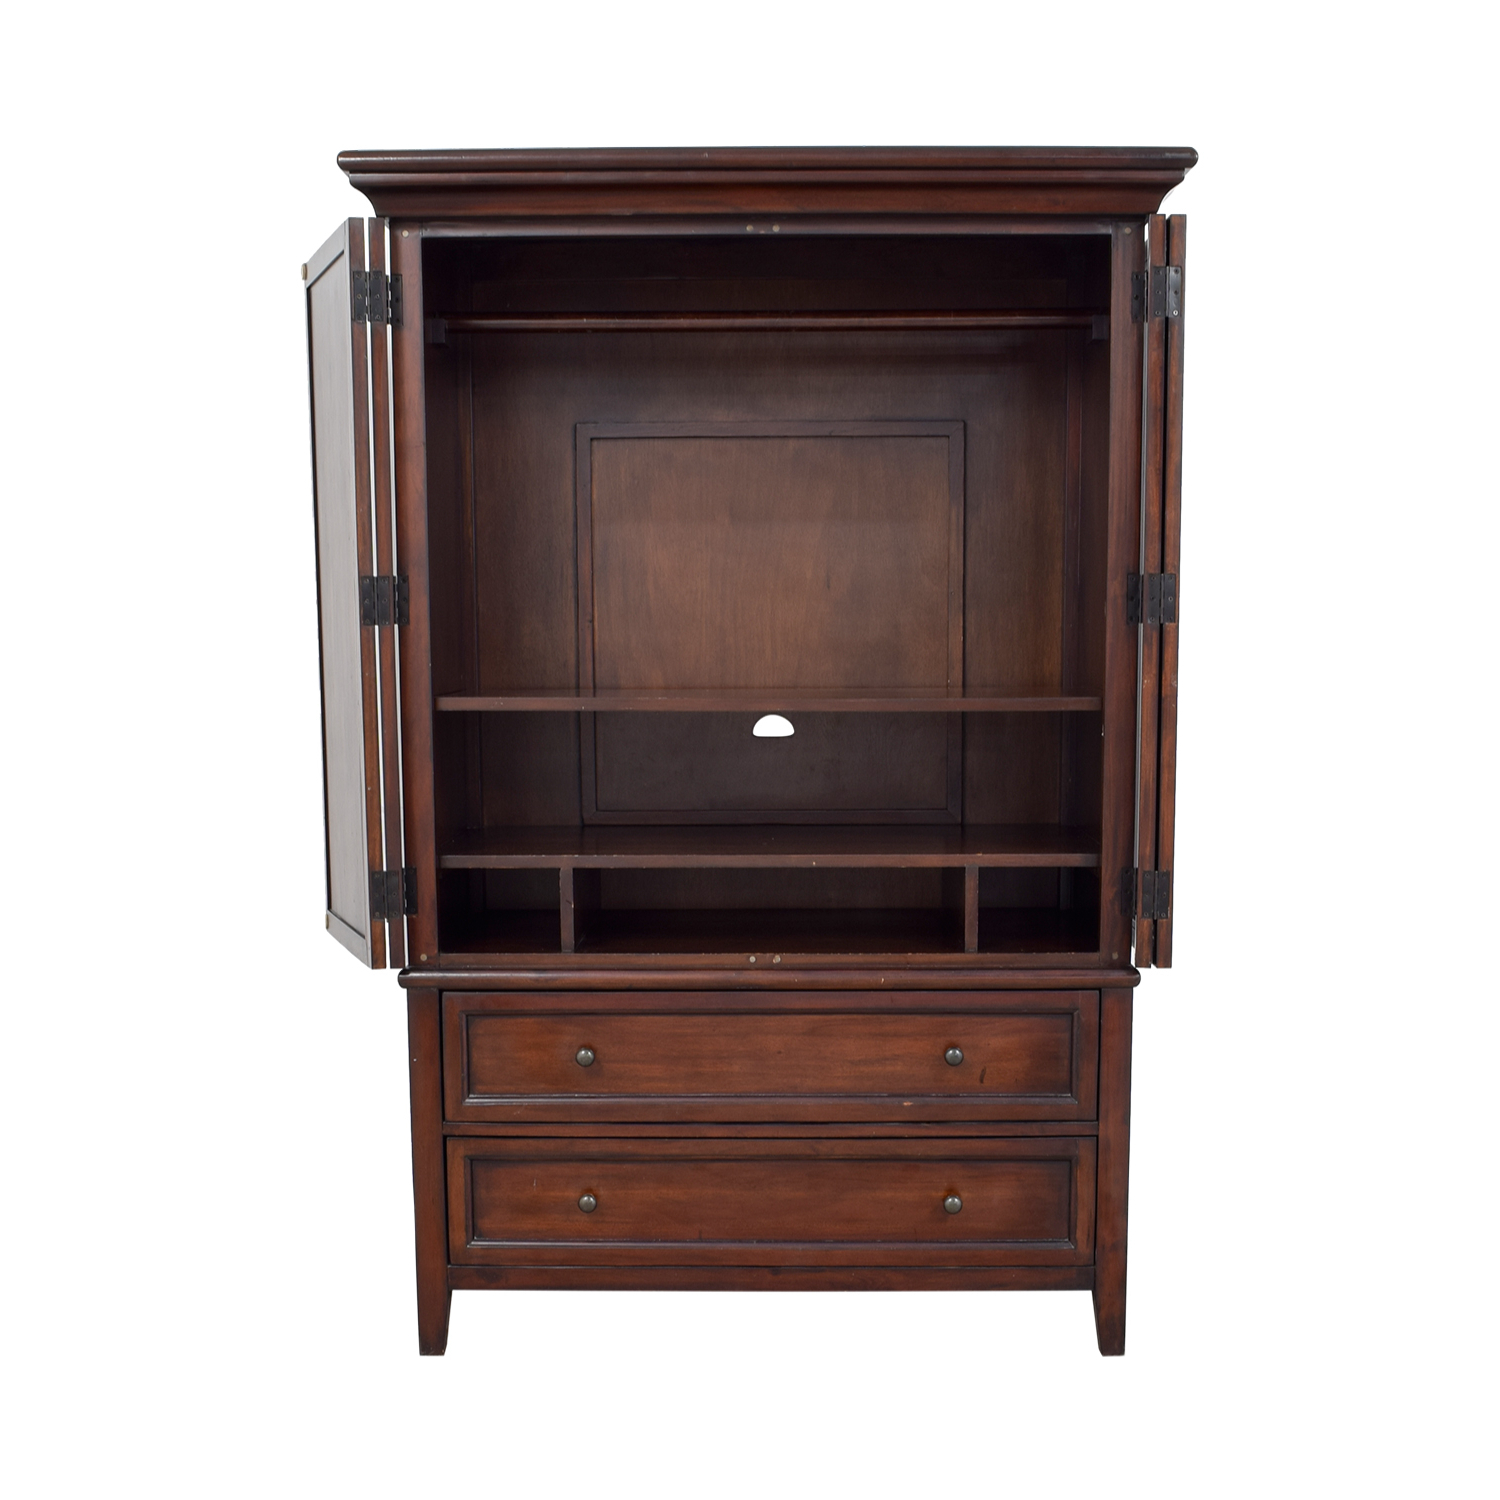 [%64% Off – Henredon Henredon Asian Étaréges Tv Cabinet Armoire / Storage Inside Popular Asian Tv Cabinets|asian Tv Cabinets Intended For Well Known 64% Off – Henredon Henredon Asian Étaréges Tv Cabinet Armoire / Storage|well Liked Asian Tv Cabinets Throughout 64% Off – Henredon Henredon Asian Étaréges Tv Cabinet Armoire / Storage|best And Newest 64% Off – Henredon Henredon Asian Étaréges Tv Cabinet Armoire / Storage In Asian Tv Cabinets%] (View 13 of 20)